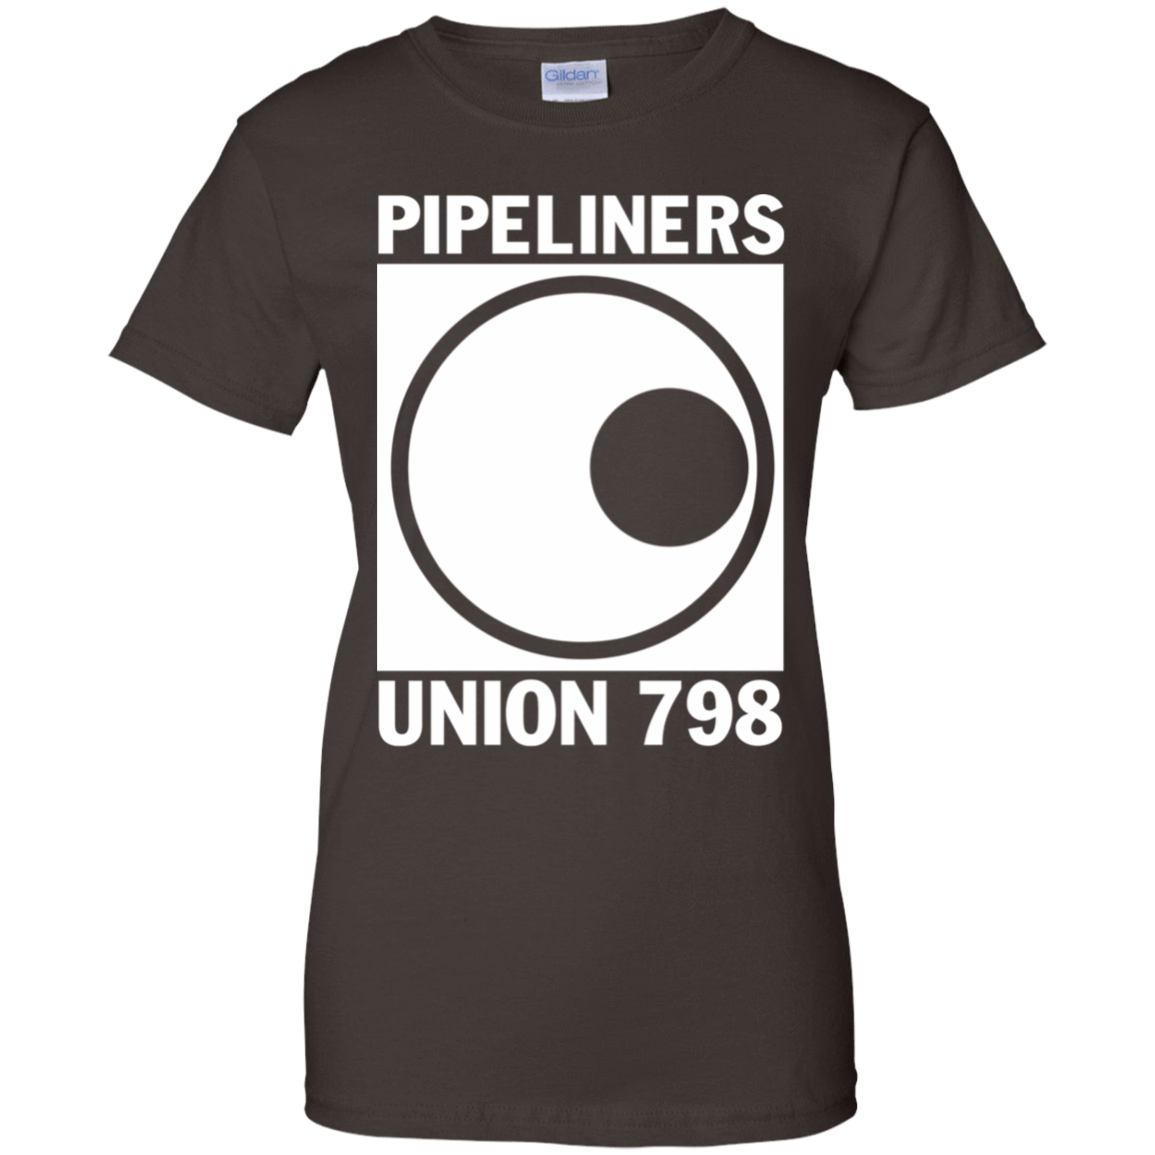 I'm A Union Member Pipeliners Union 798 939-9251-73302072-44702 - Tee Ript